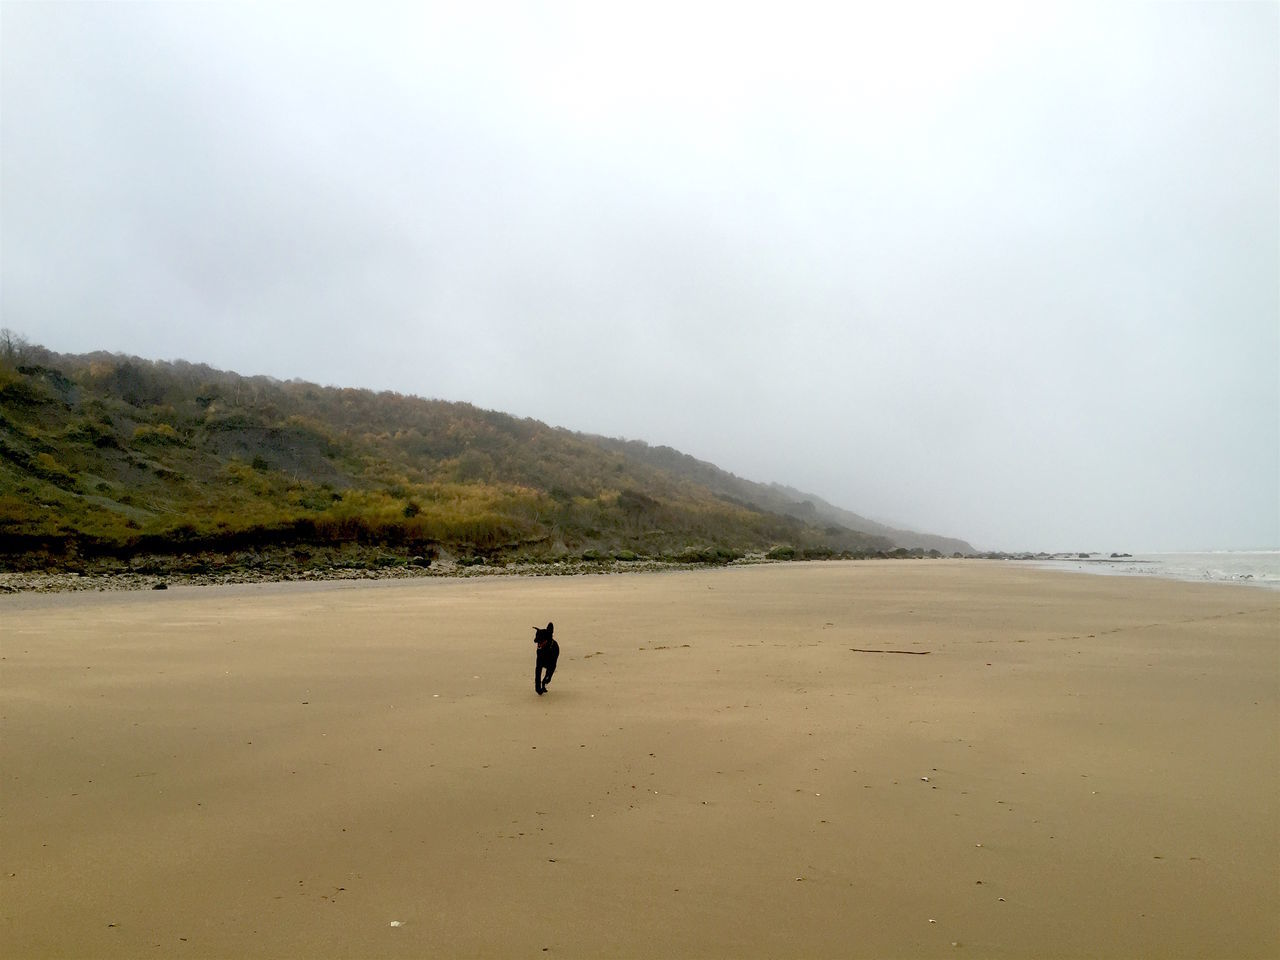 Beach Beach Photography Chien Dog Falaise Fog Happy Happy Dog Landscape Misty Weather Nature Nature Nature Photography Normandie Normandy Normandy Beach Outdoors Plage Plage Normande Running Dog Scenics Vaches Cow Campagne Country Champs Fields Herbes Nuages Ciel Walk